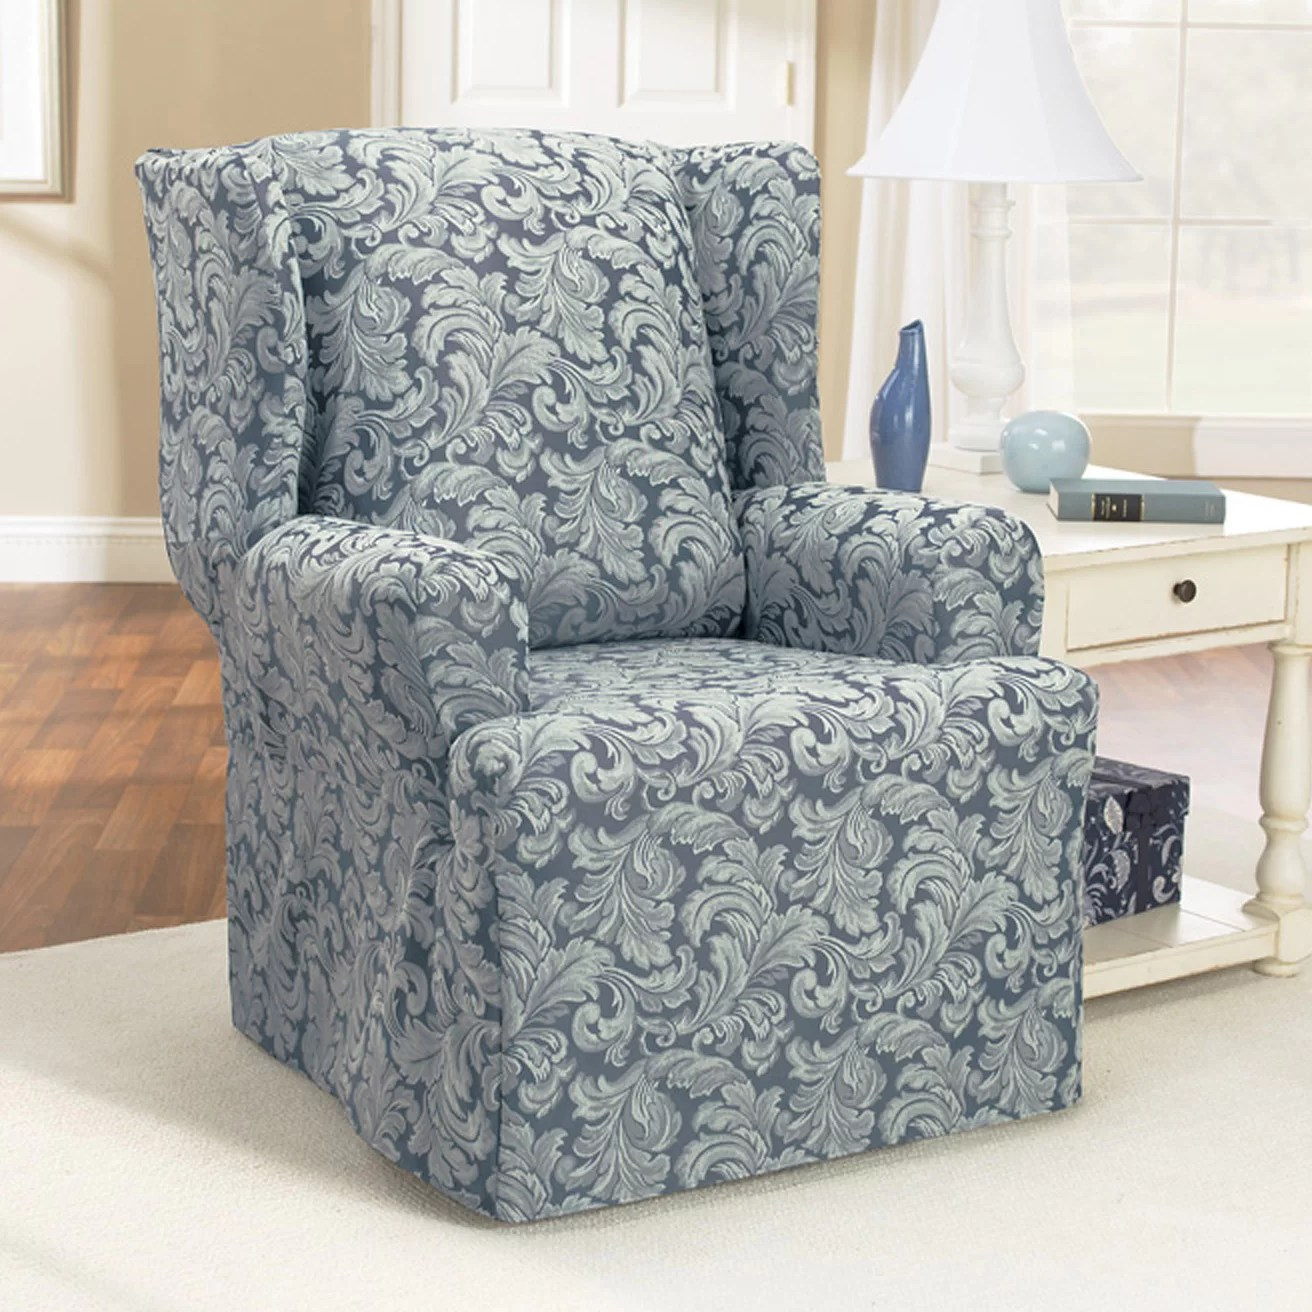 Chair Slipcovers T Cushion Sure Fit Scroll Classic Wing Chair T Cushion Skirted